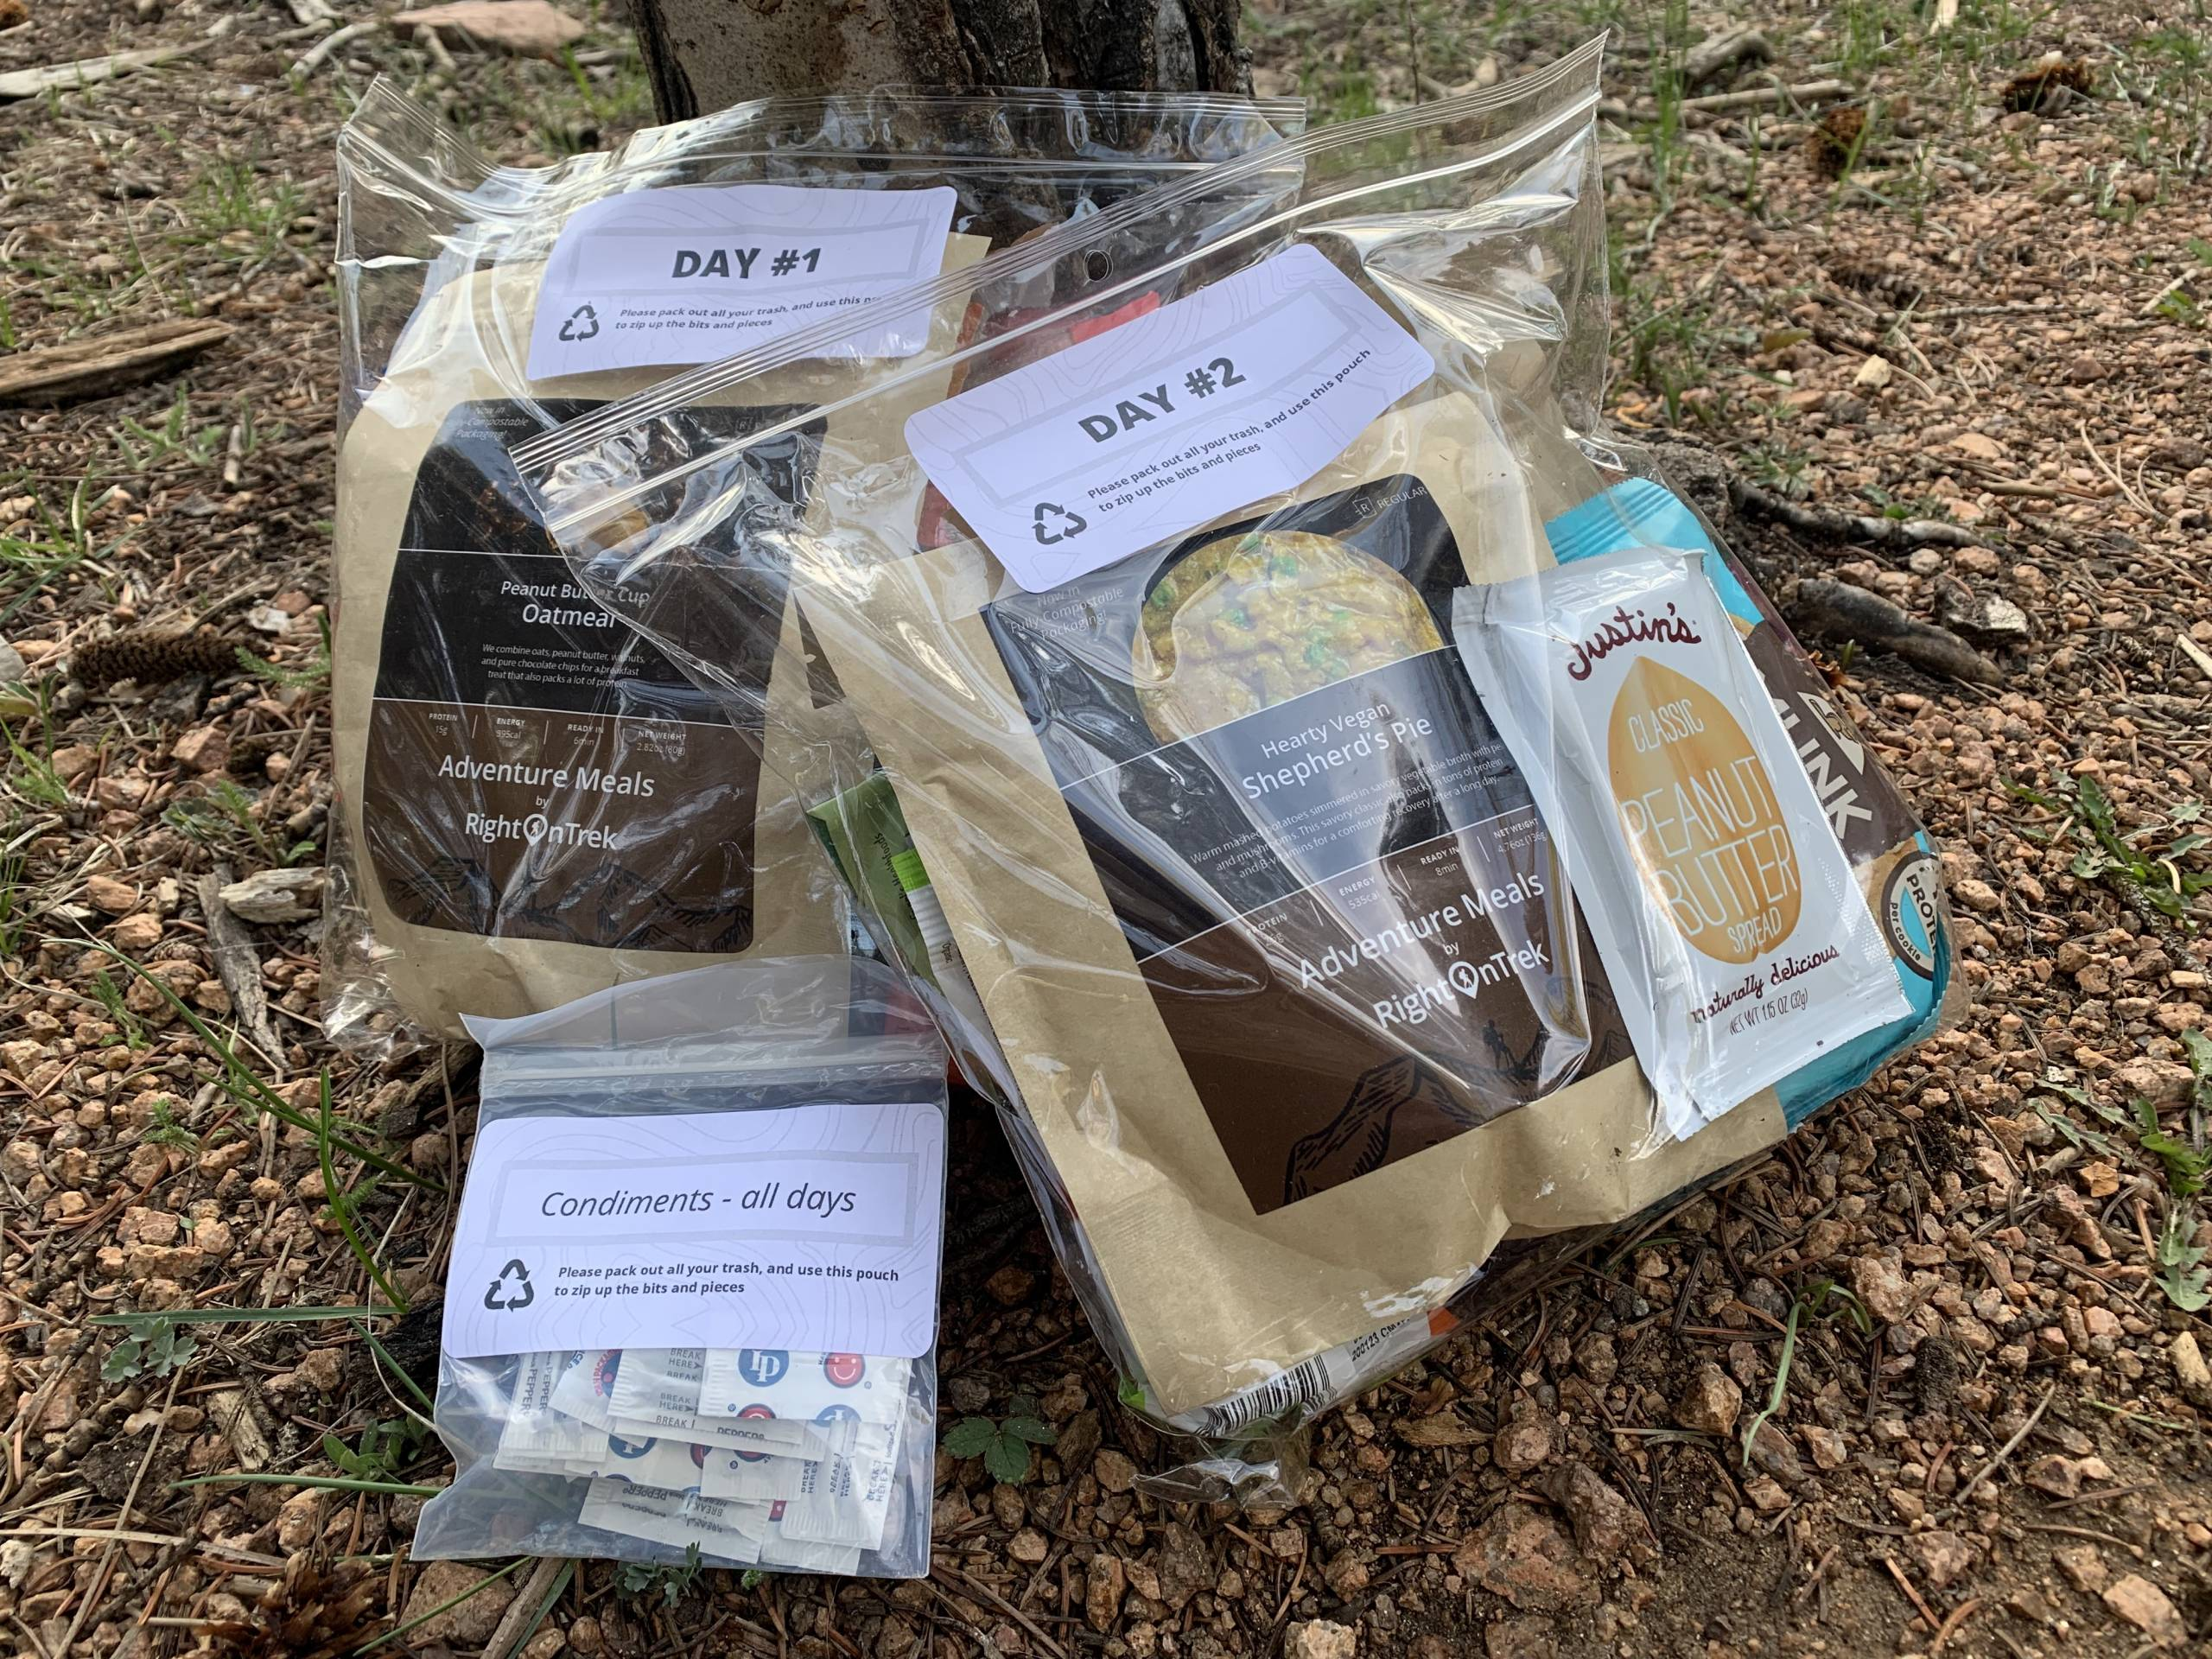 backpacking meal kit packaged and labeled by day